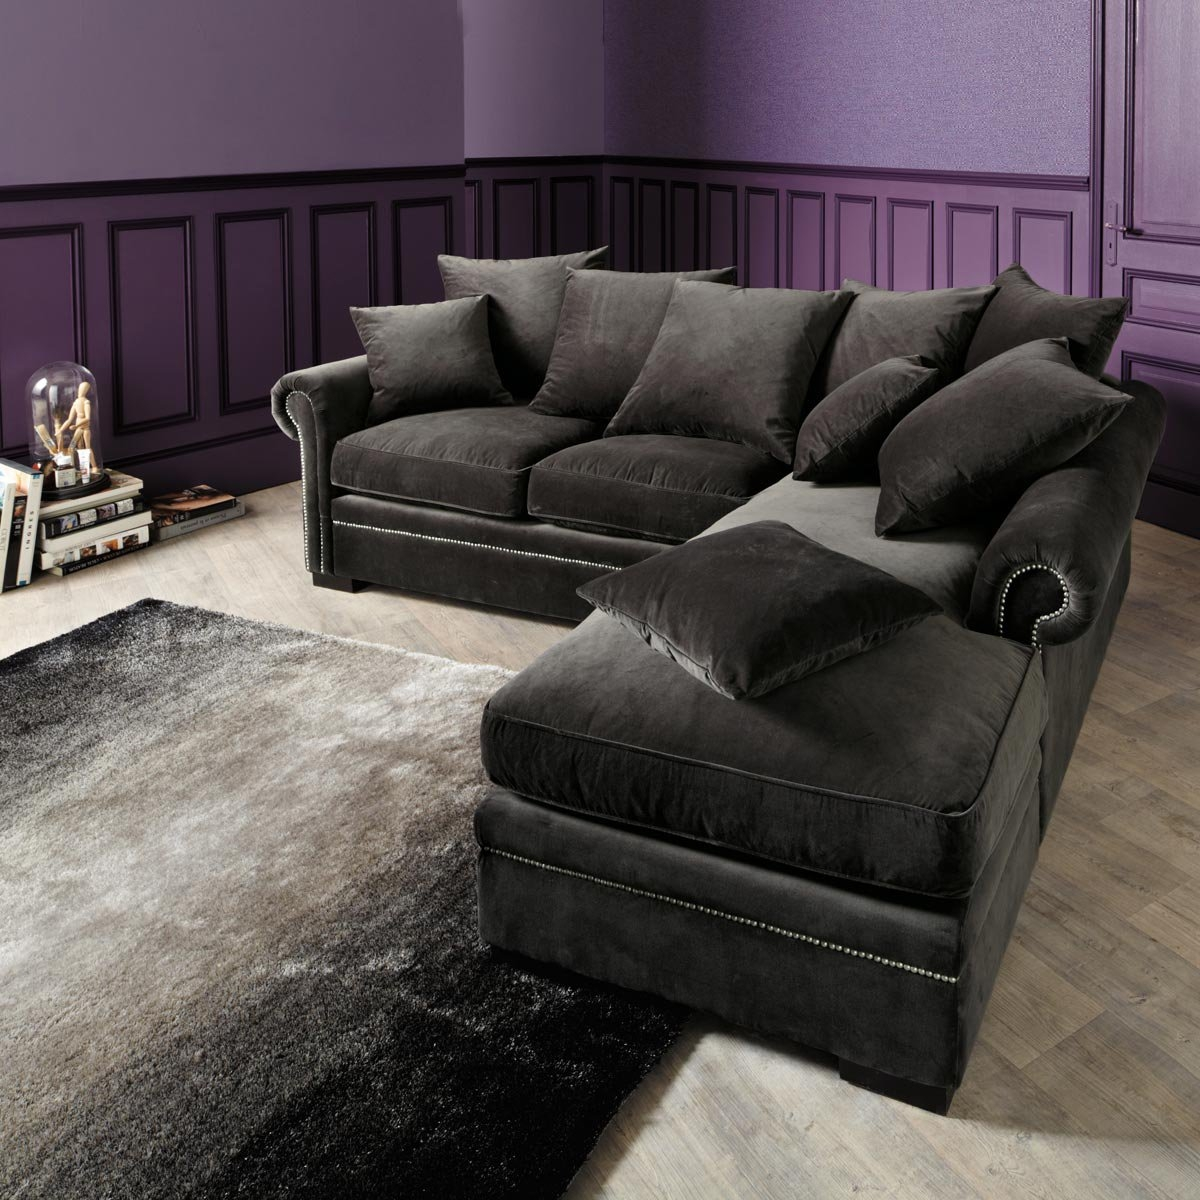 Dark Grey Sofa With Chaise Modern Sofas With Regard To Charcoal Grey Sofas (Image 8 of 15)